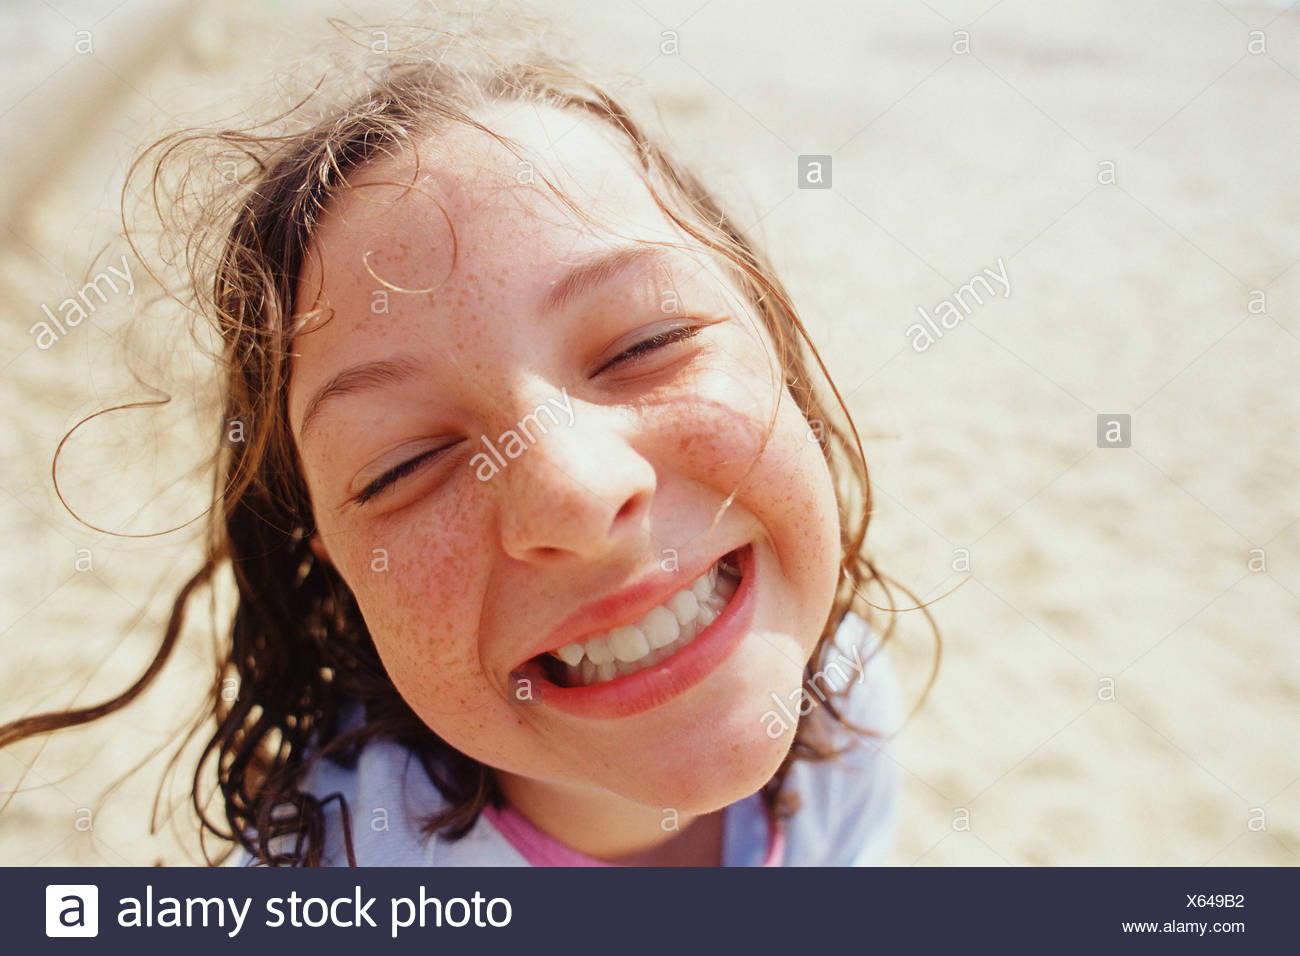 A young girl with a wide grin eyes half closed and wet hair outside in  rain. Stock Photo